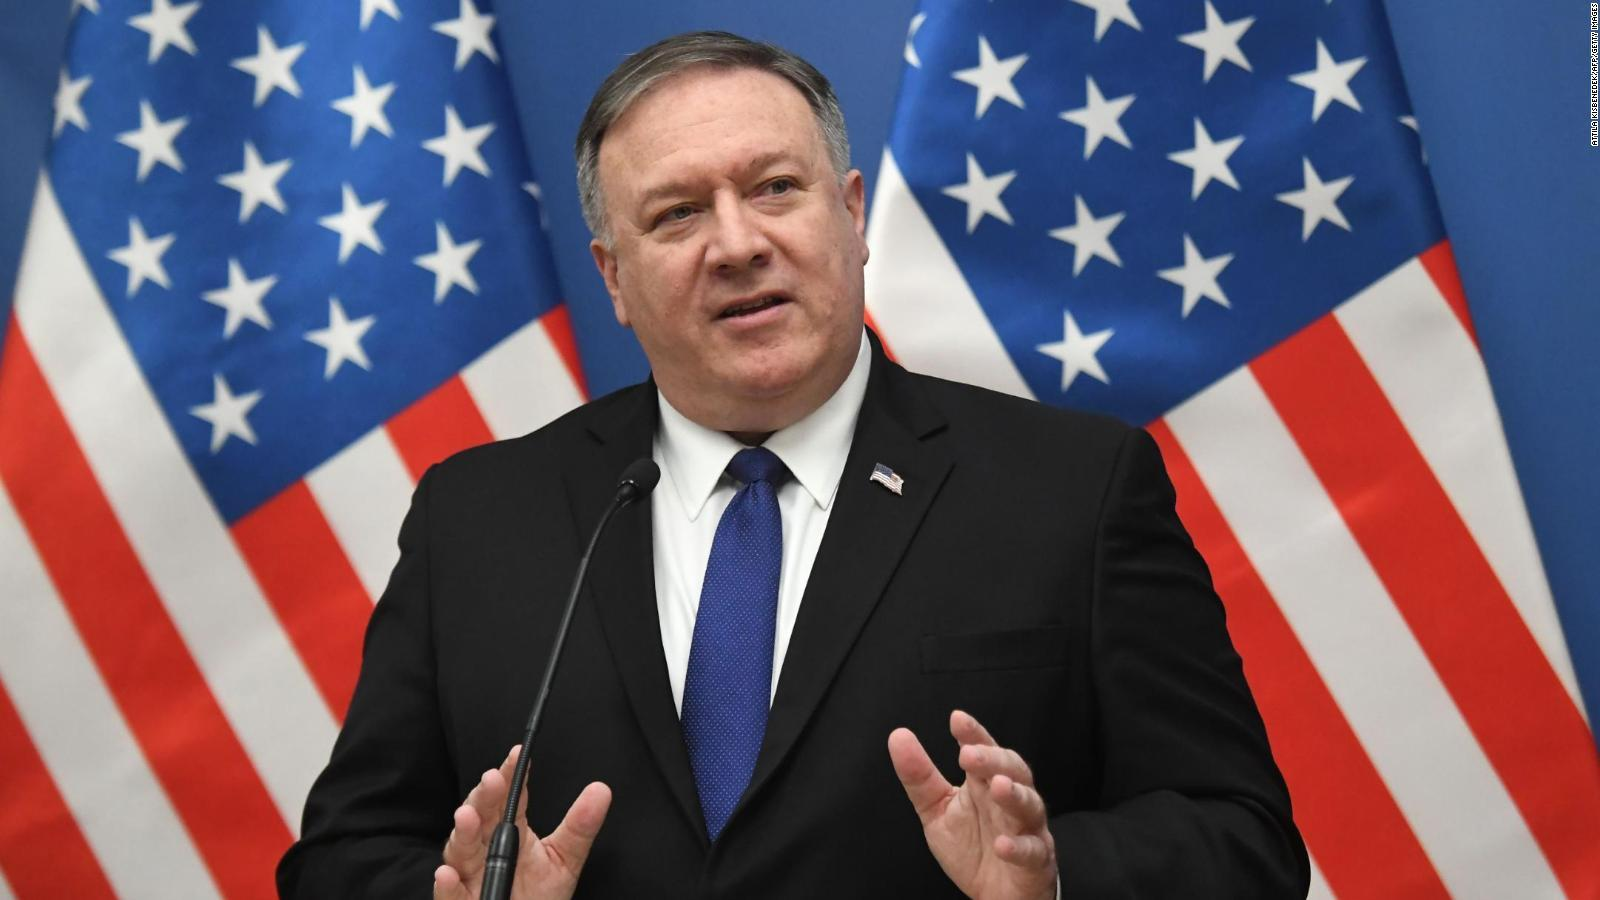 The recognition of Jerusalem as the capital - Pompeo